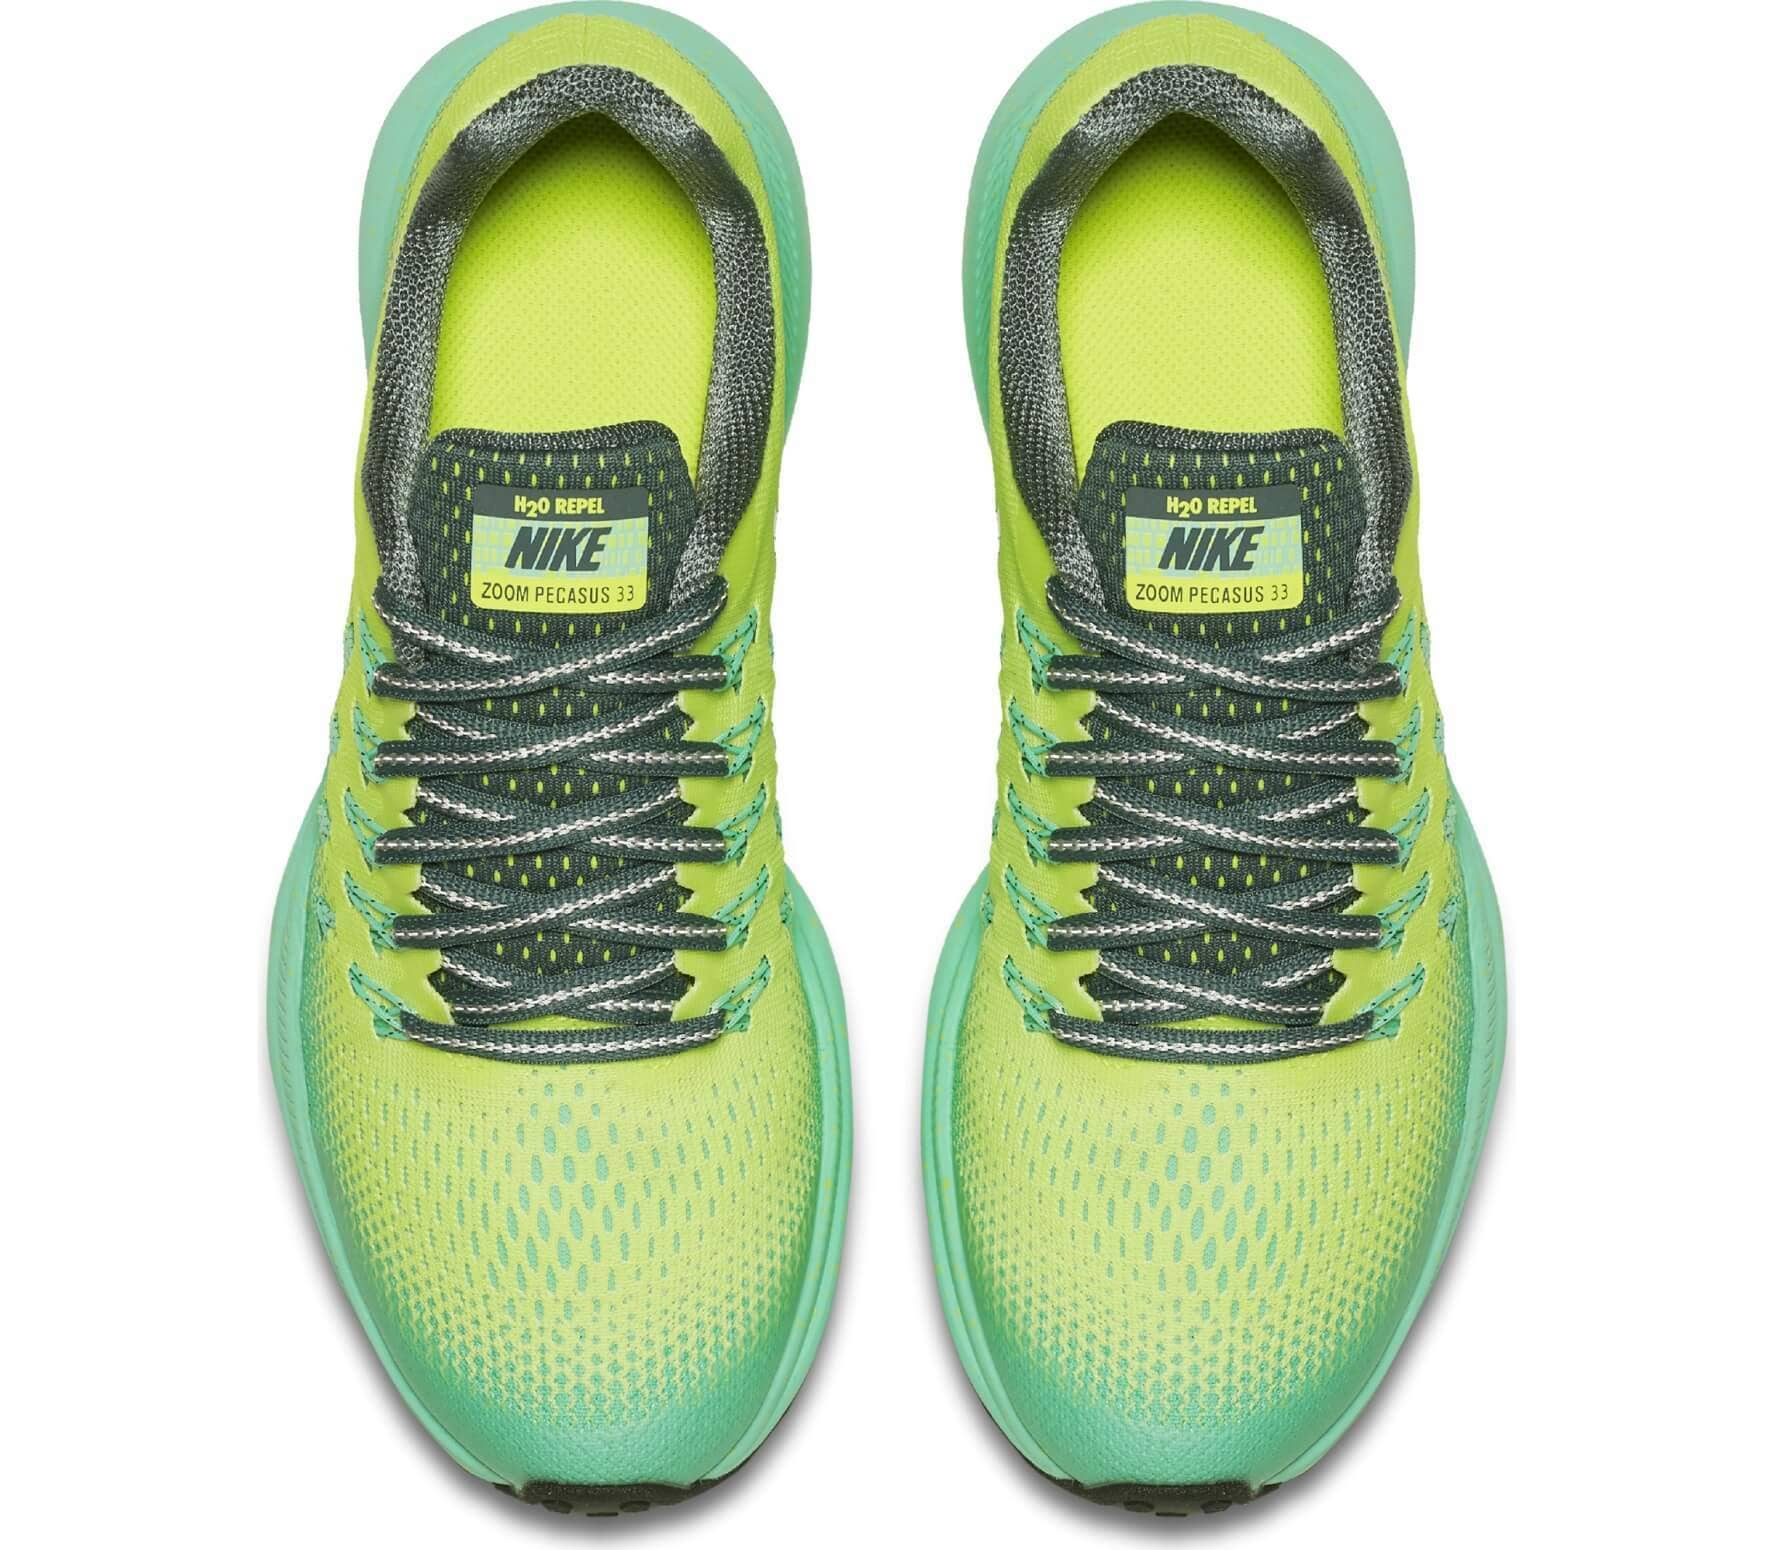 new concept 9fab4 ae82d Nike - Zoom Pegasus 33 Shield (GS) Children running shoes (light yellow